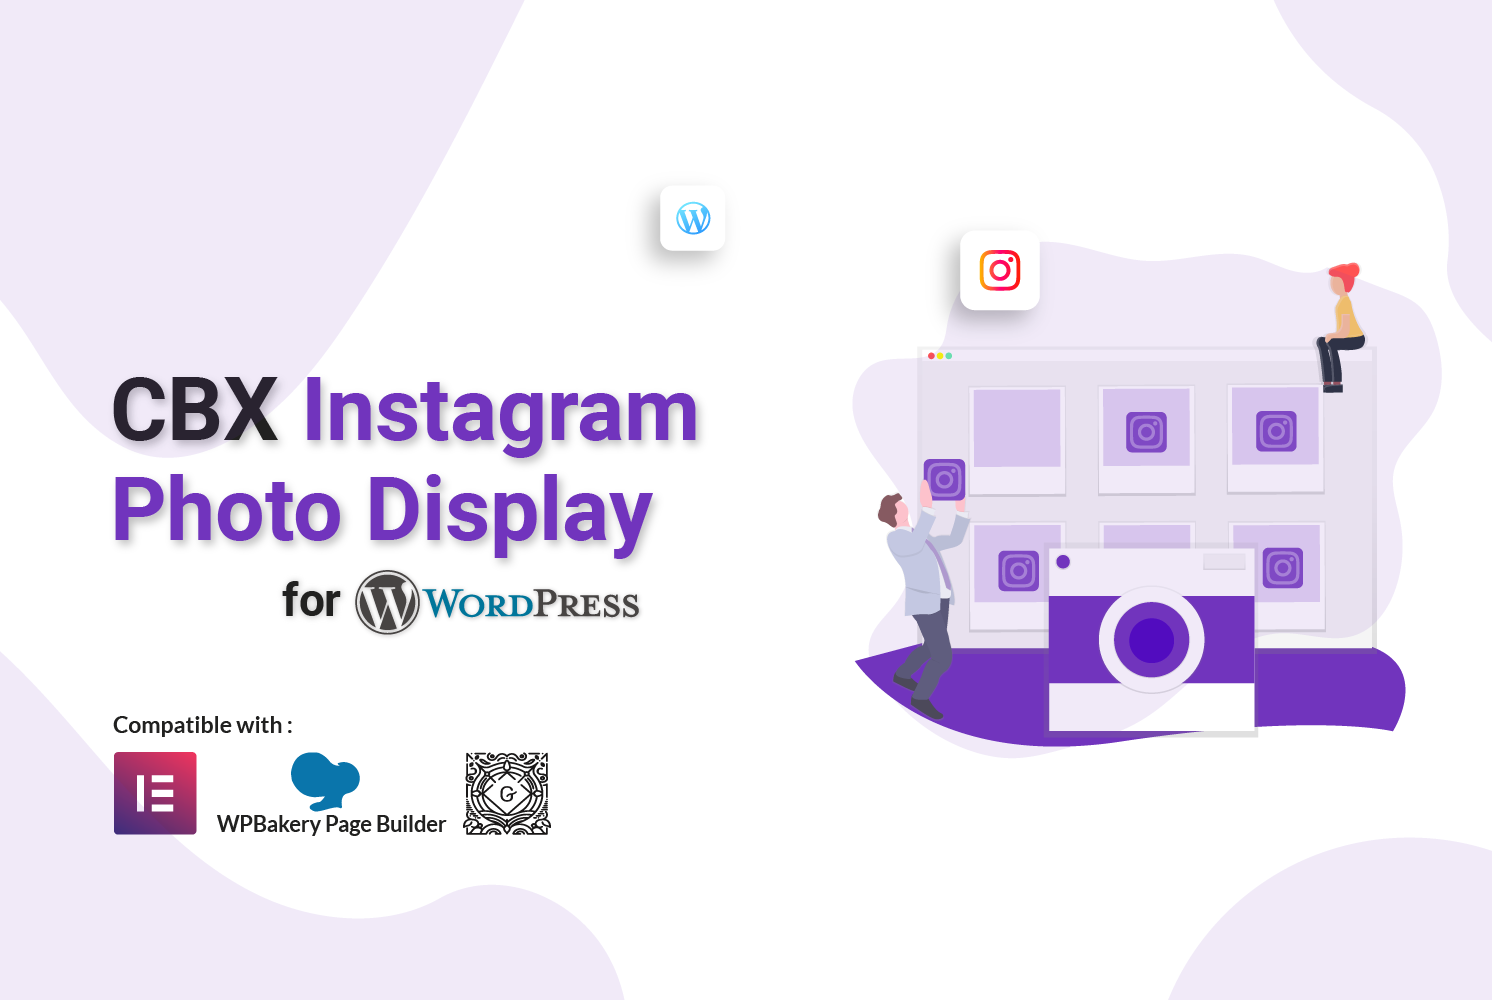 CBX Instagram Photo for WordPress